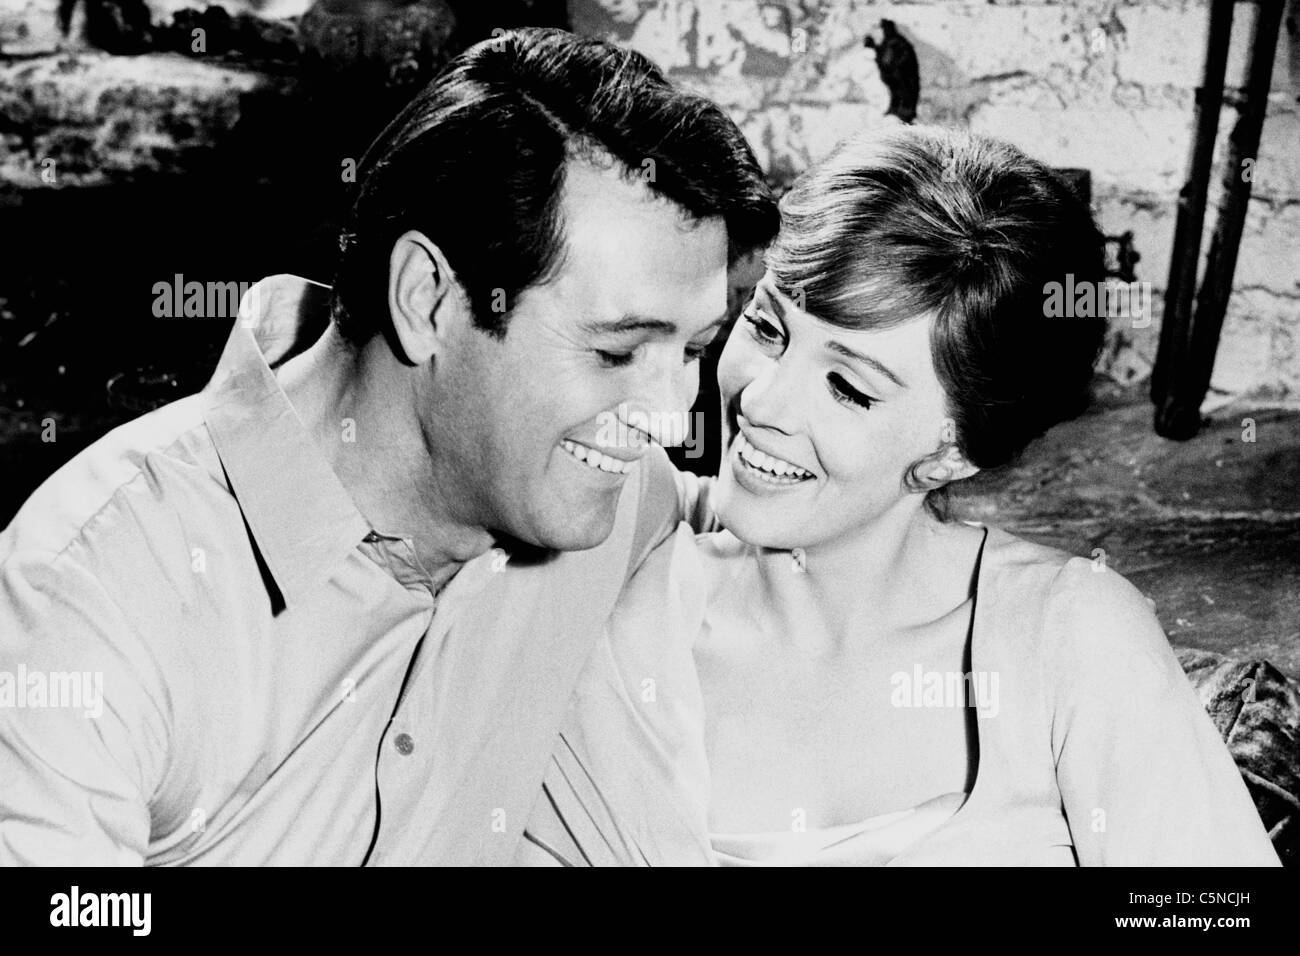 darling lili, julie andrews, rock hudson - Stock Image